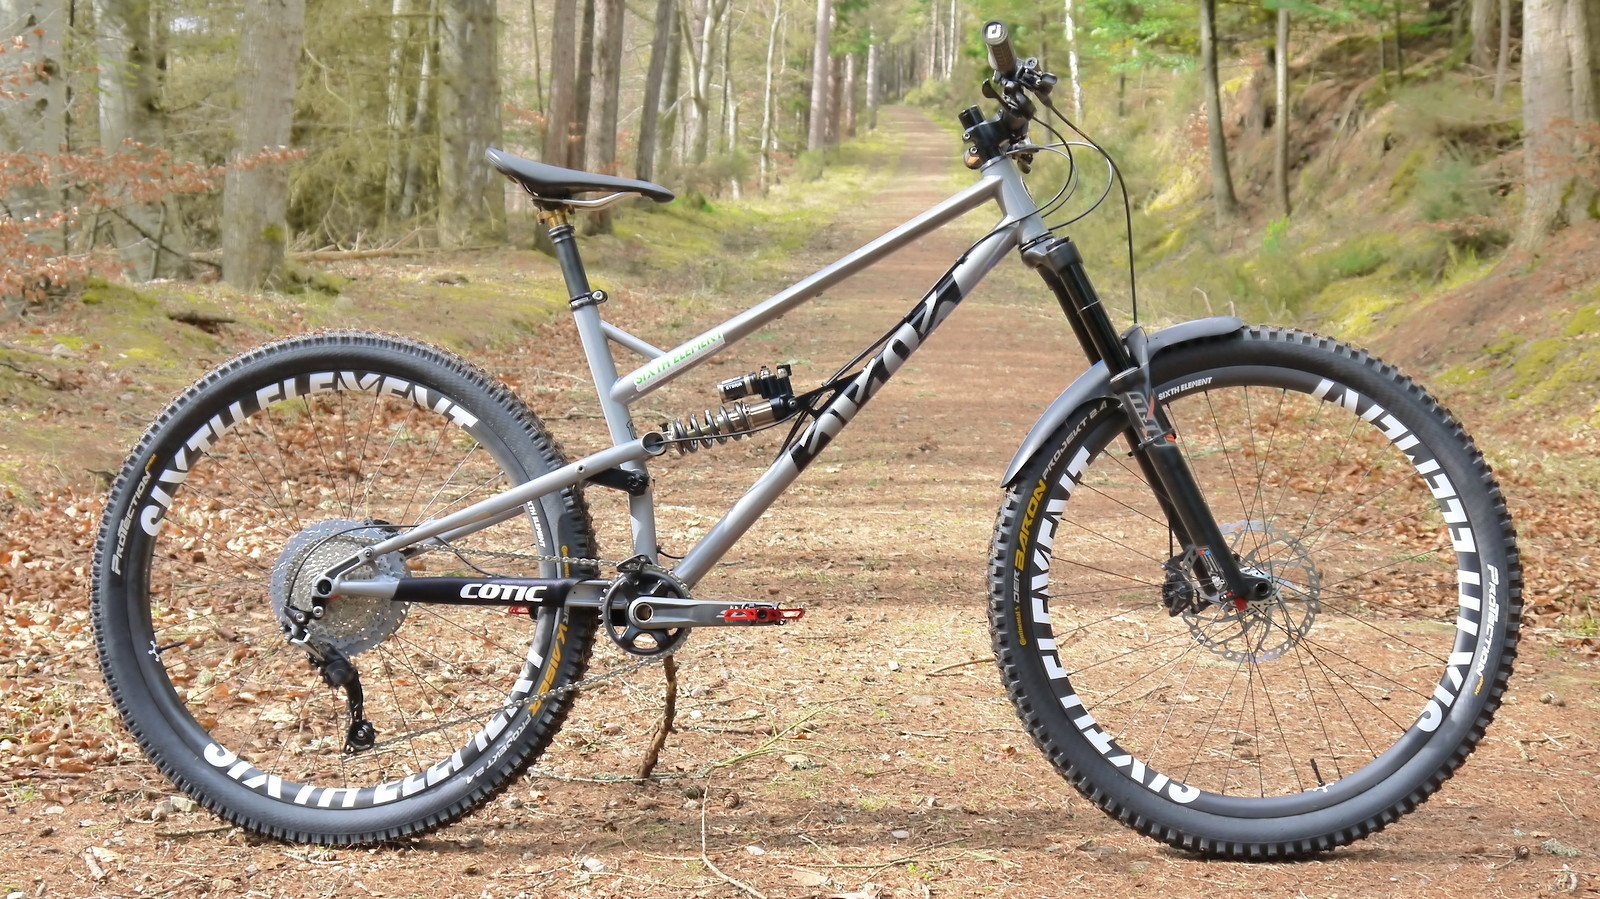 Cotic RocketMAX - 2019 Vital Bike of the Day Collection - Mountain Biking Pictures - Vital MTB